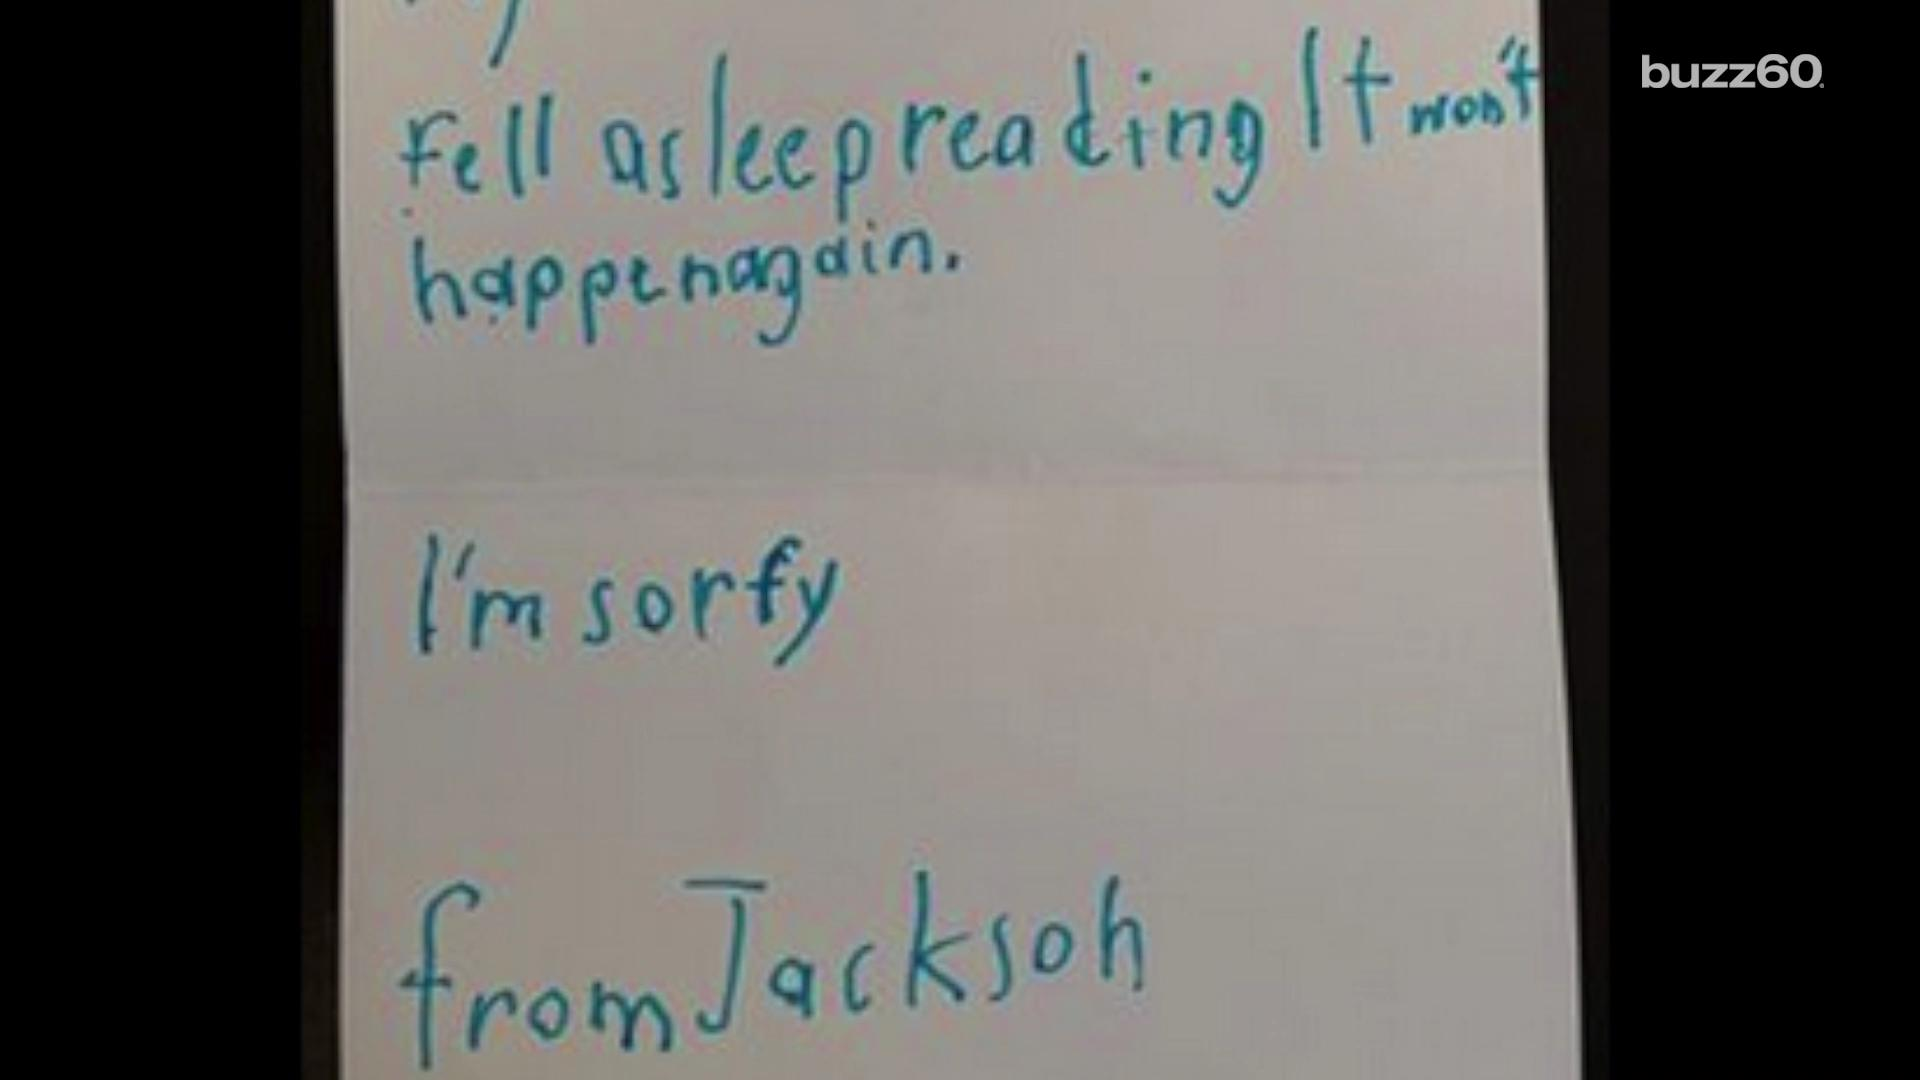 Boy writes adorable note to library apologizing for damaging book